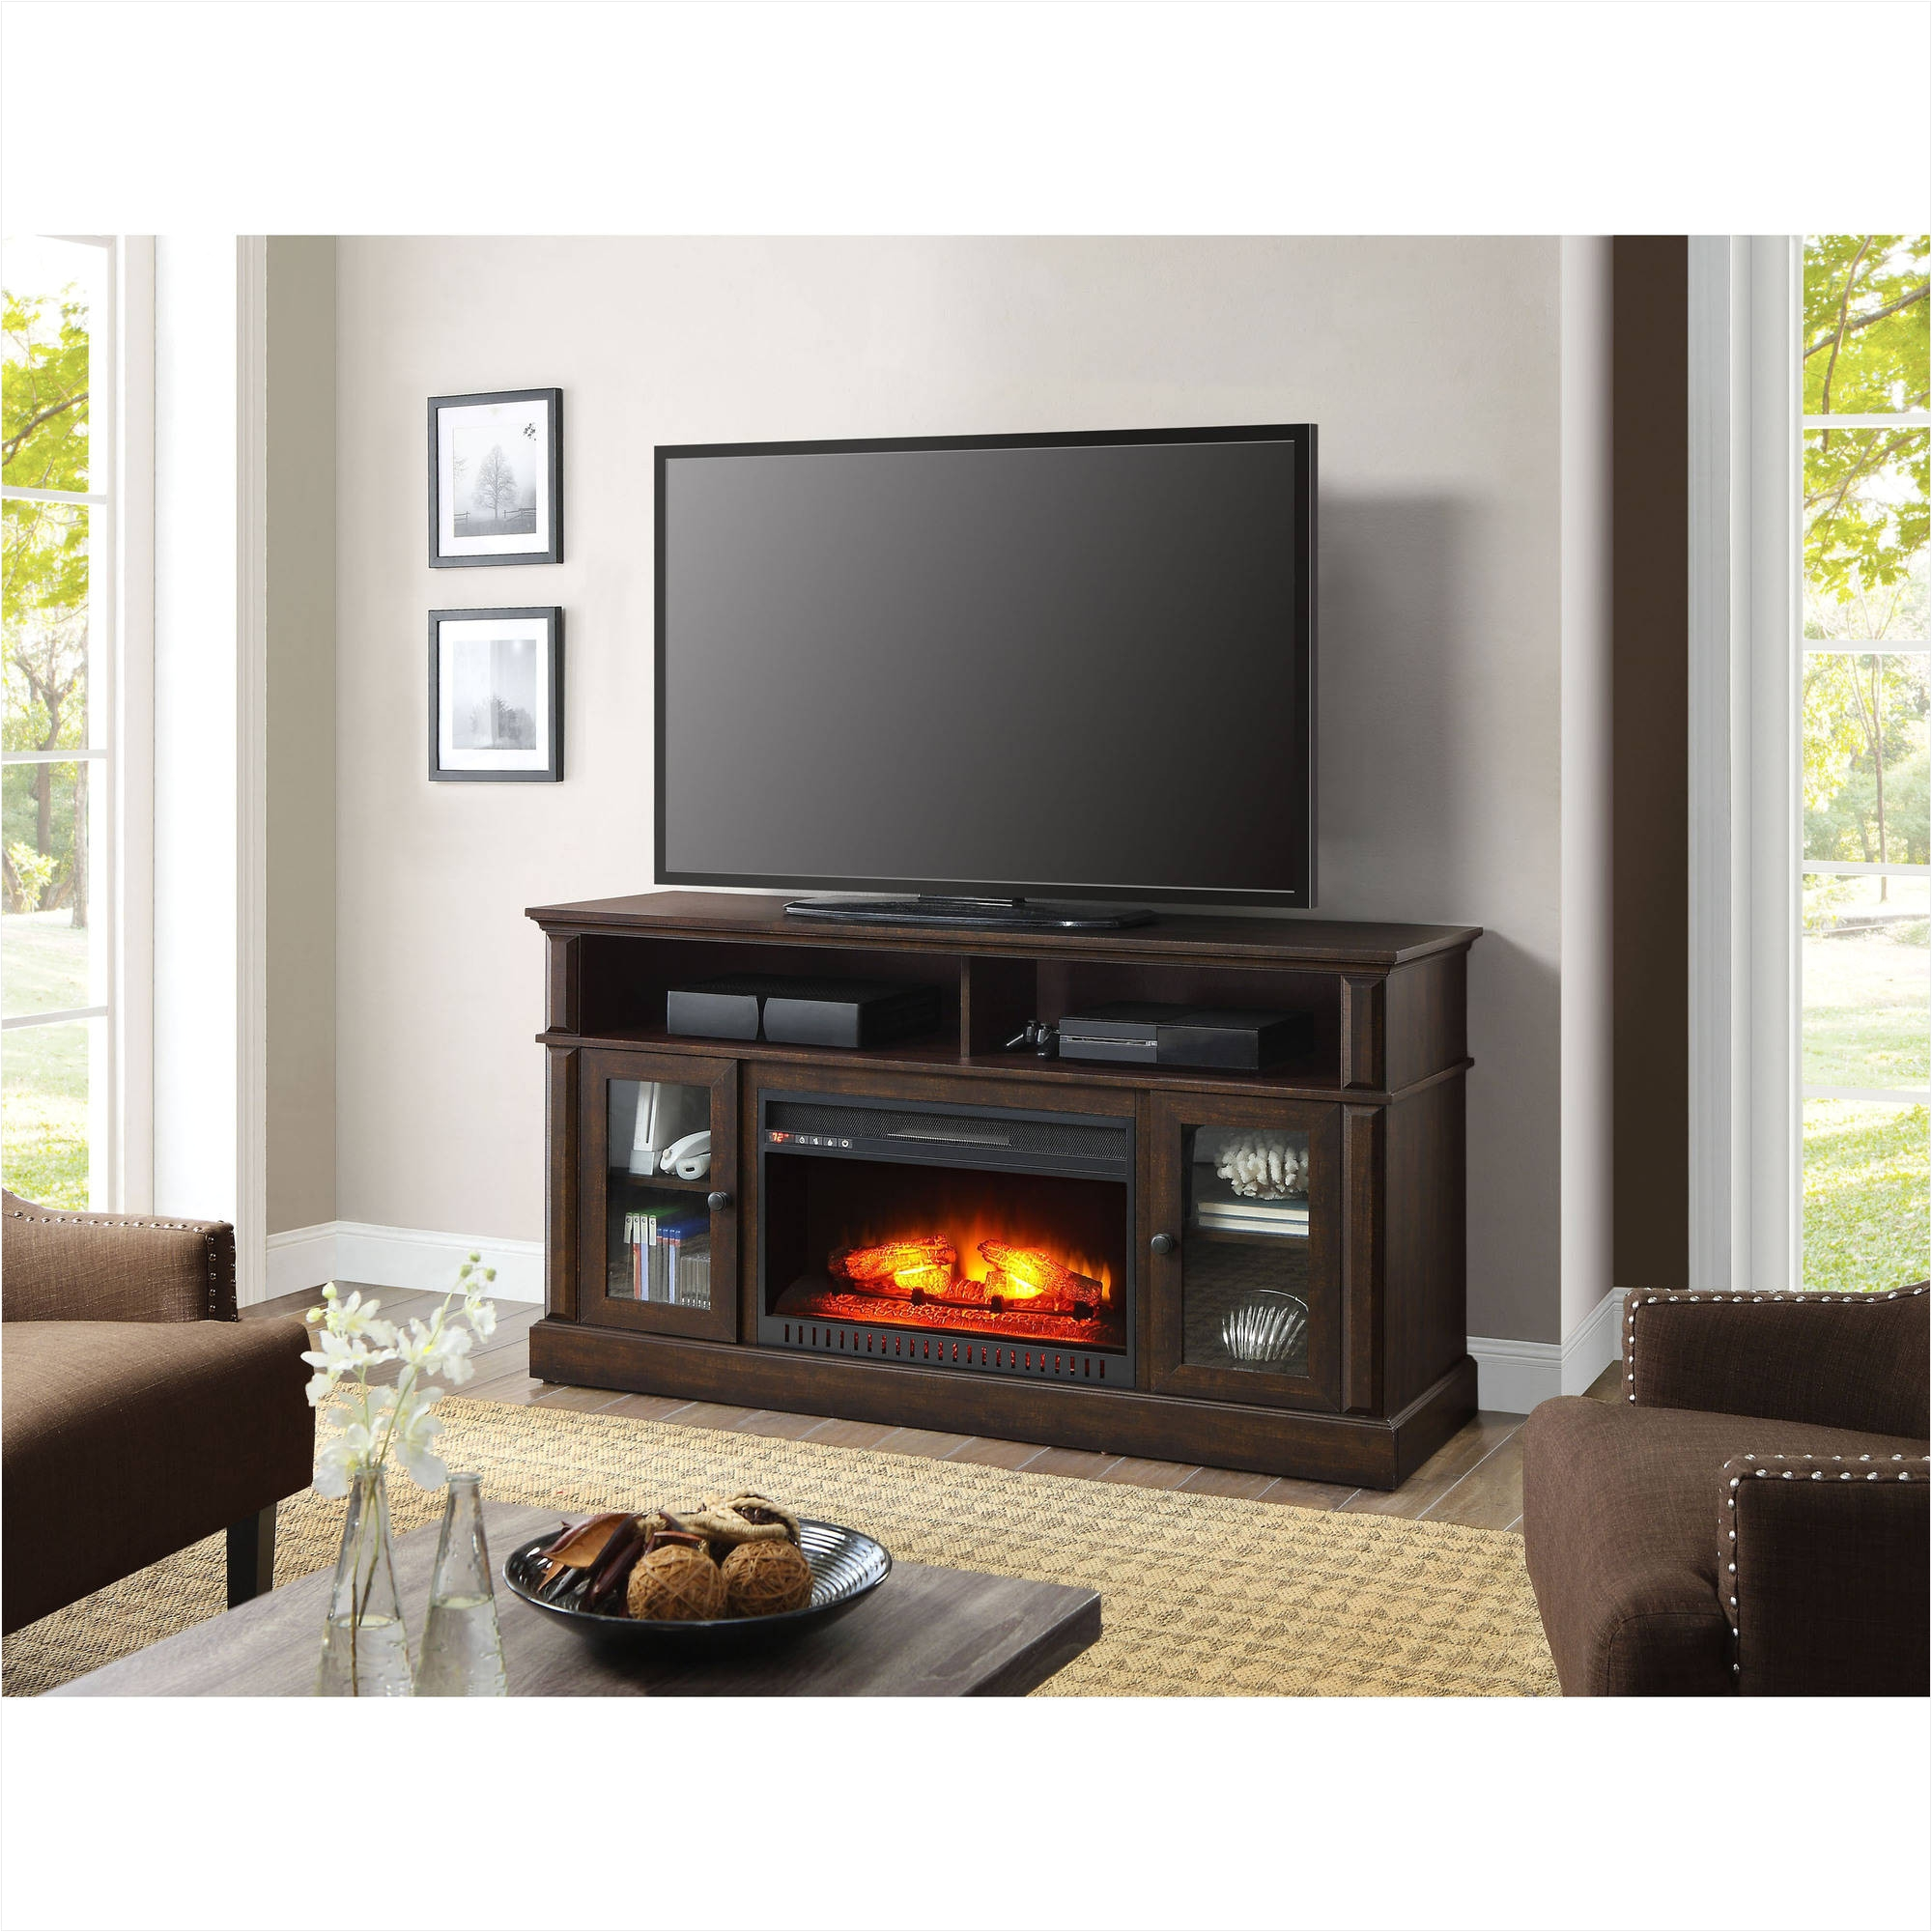 Big Lots Fireplaces Clearance Elegant Big Lots Fireplace Stand